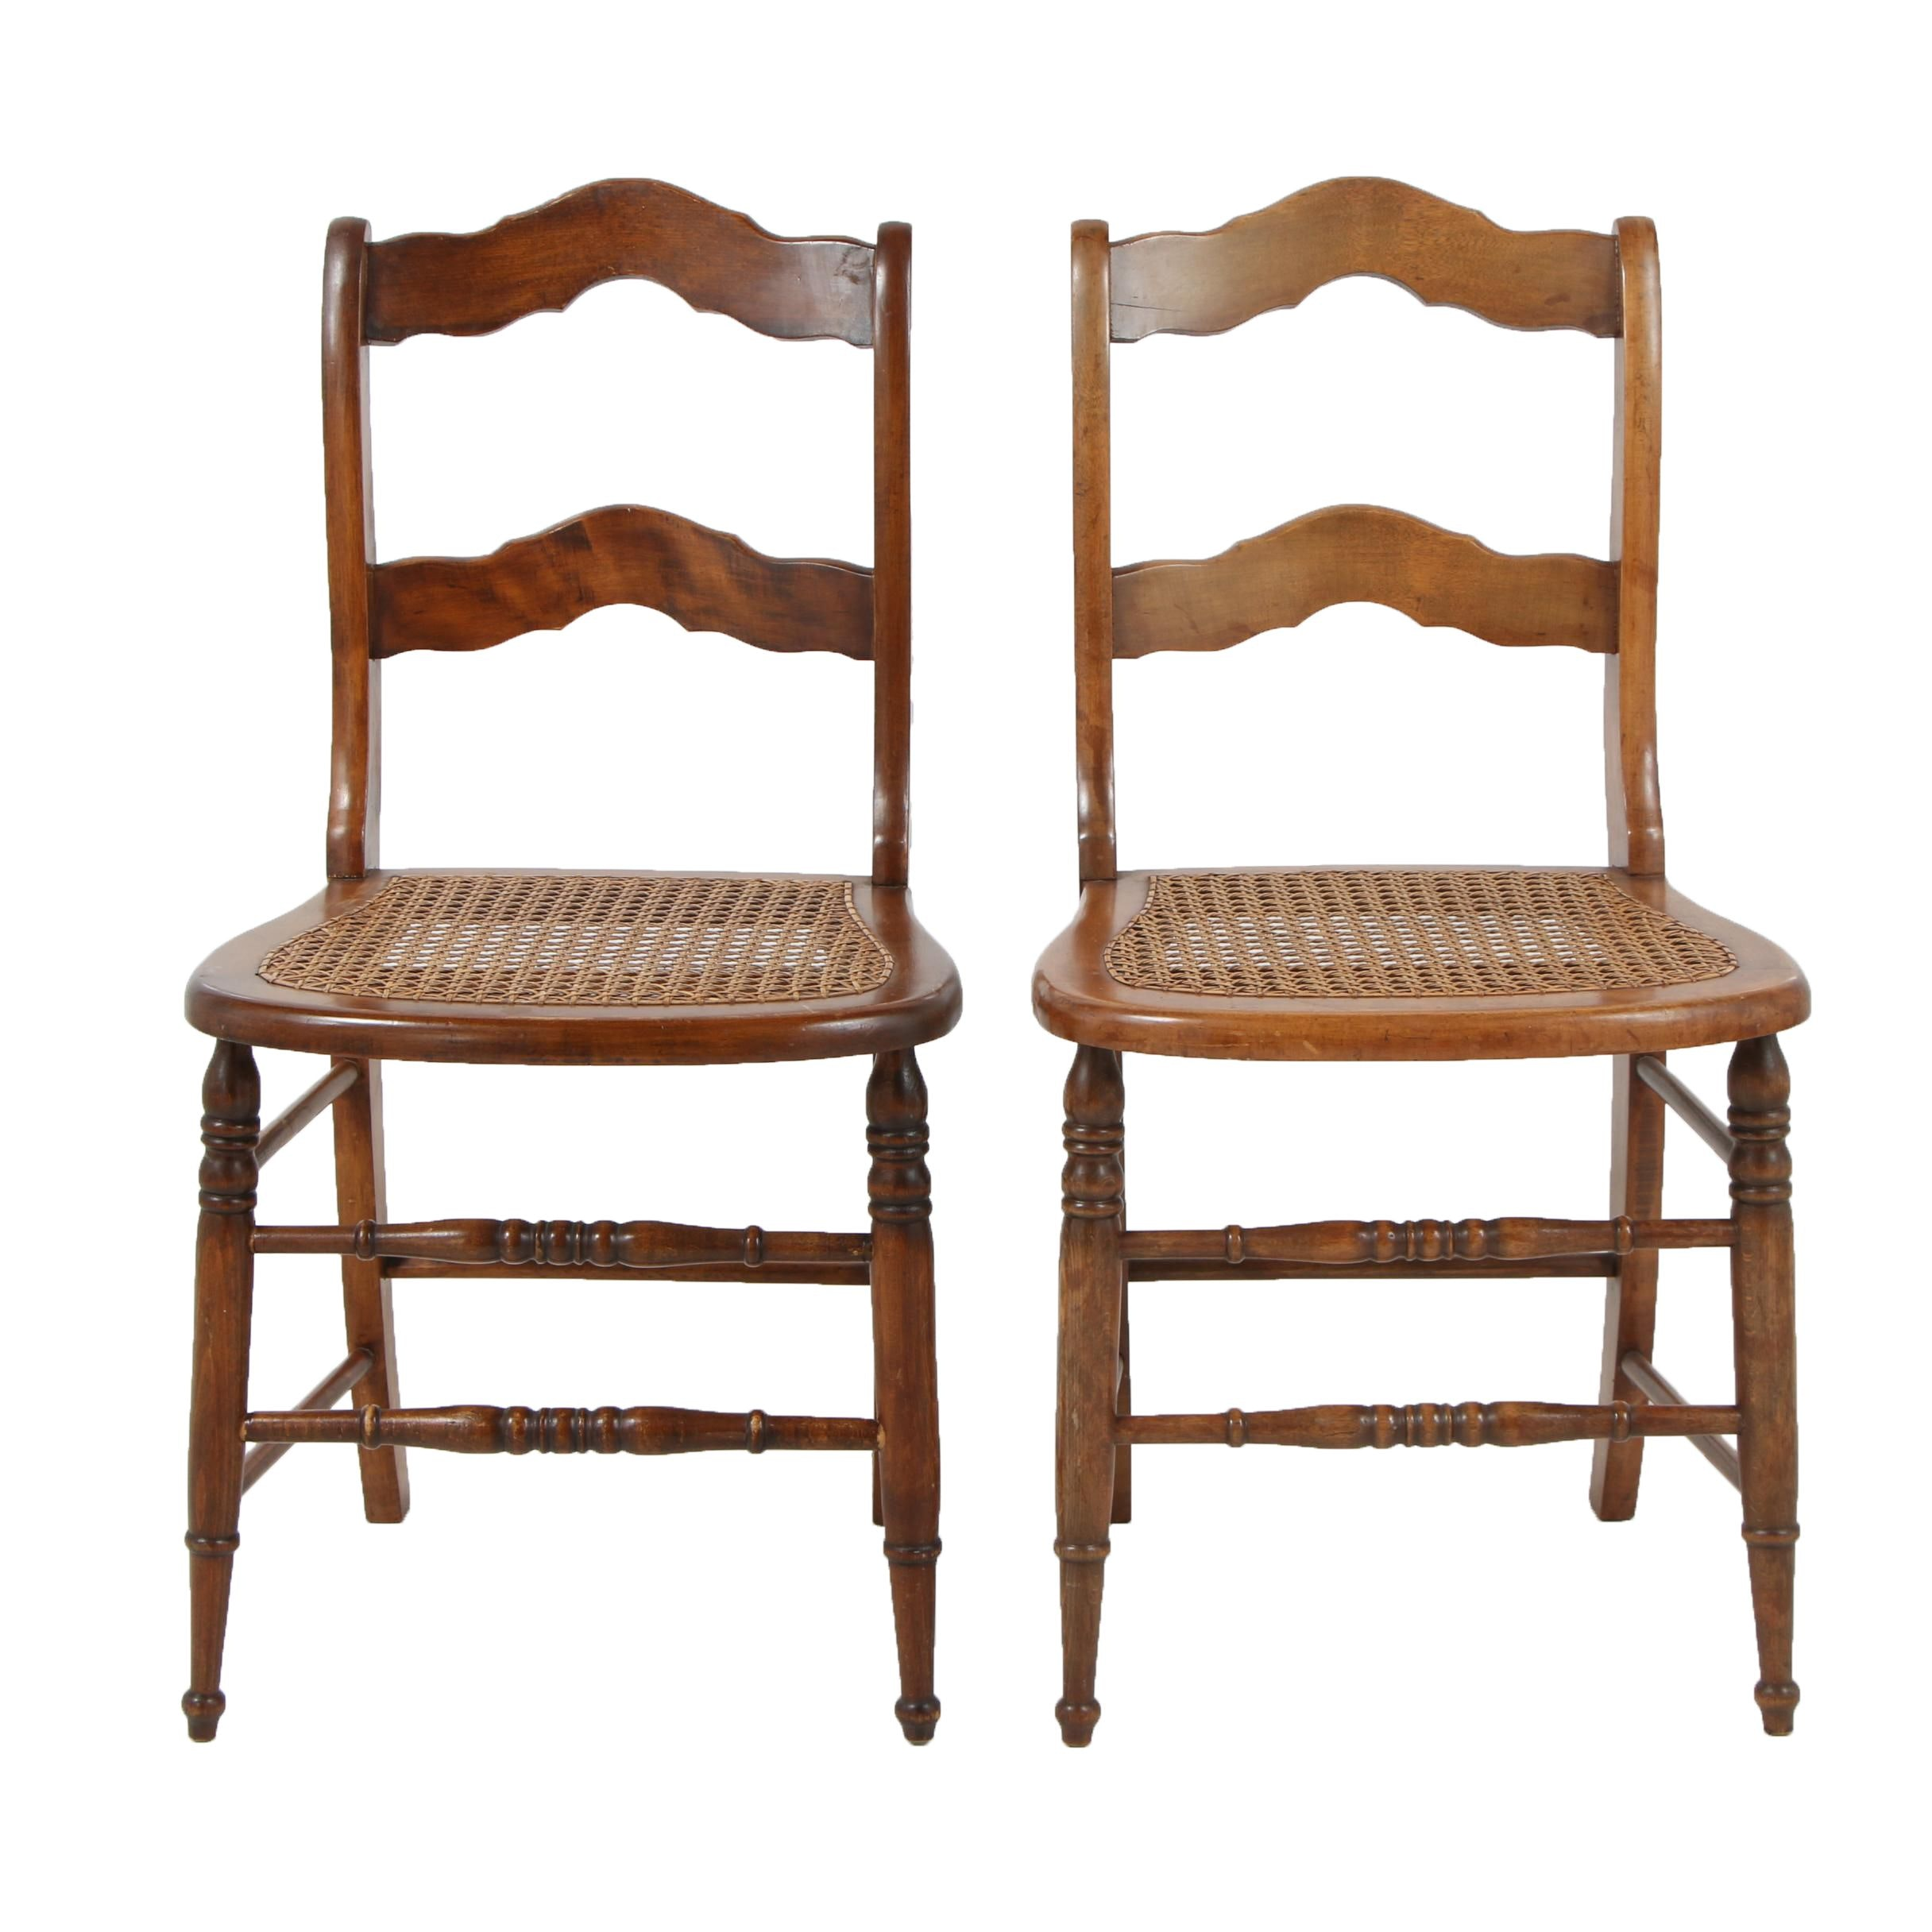 Maple Ladder Back Side Chairs with Cane Seats